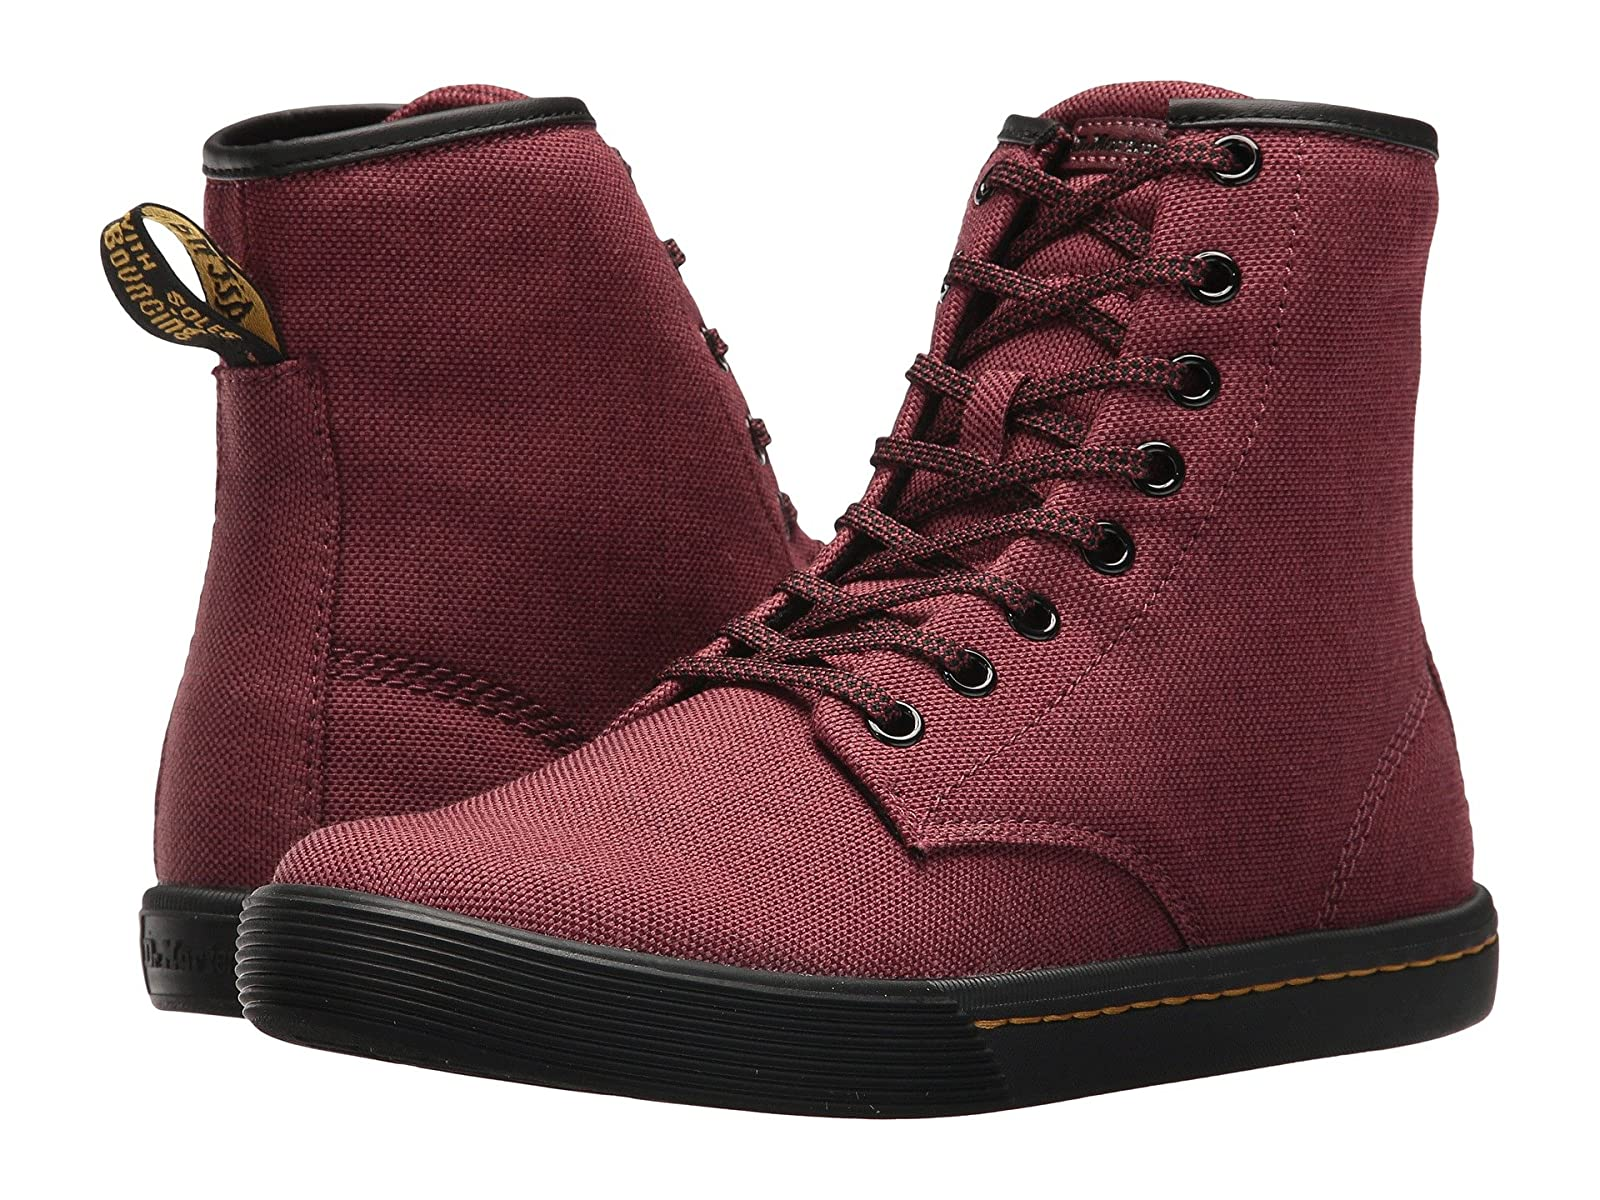 Dr. Martens SheridanCheap and distinctive eye-catching shoes